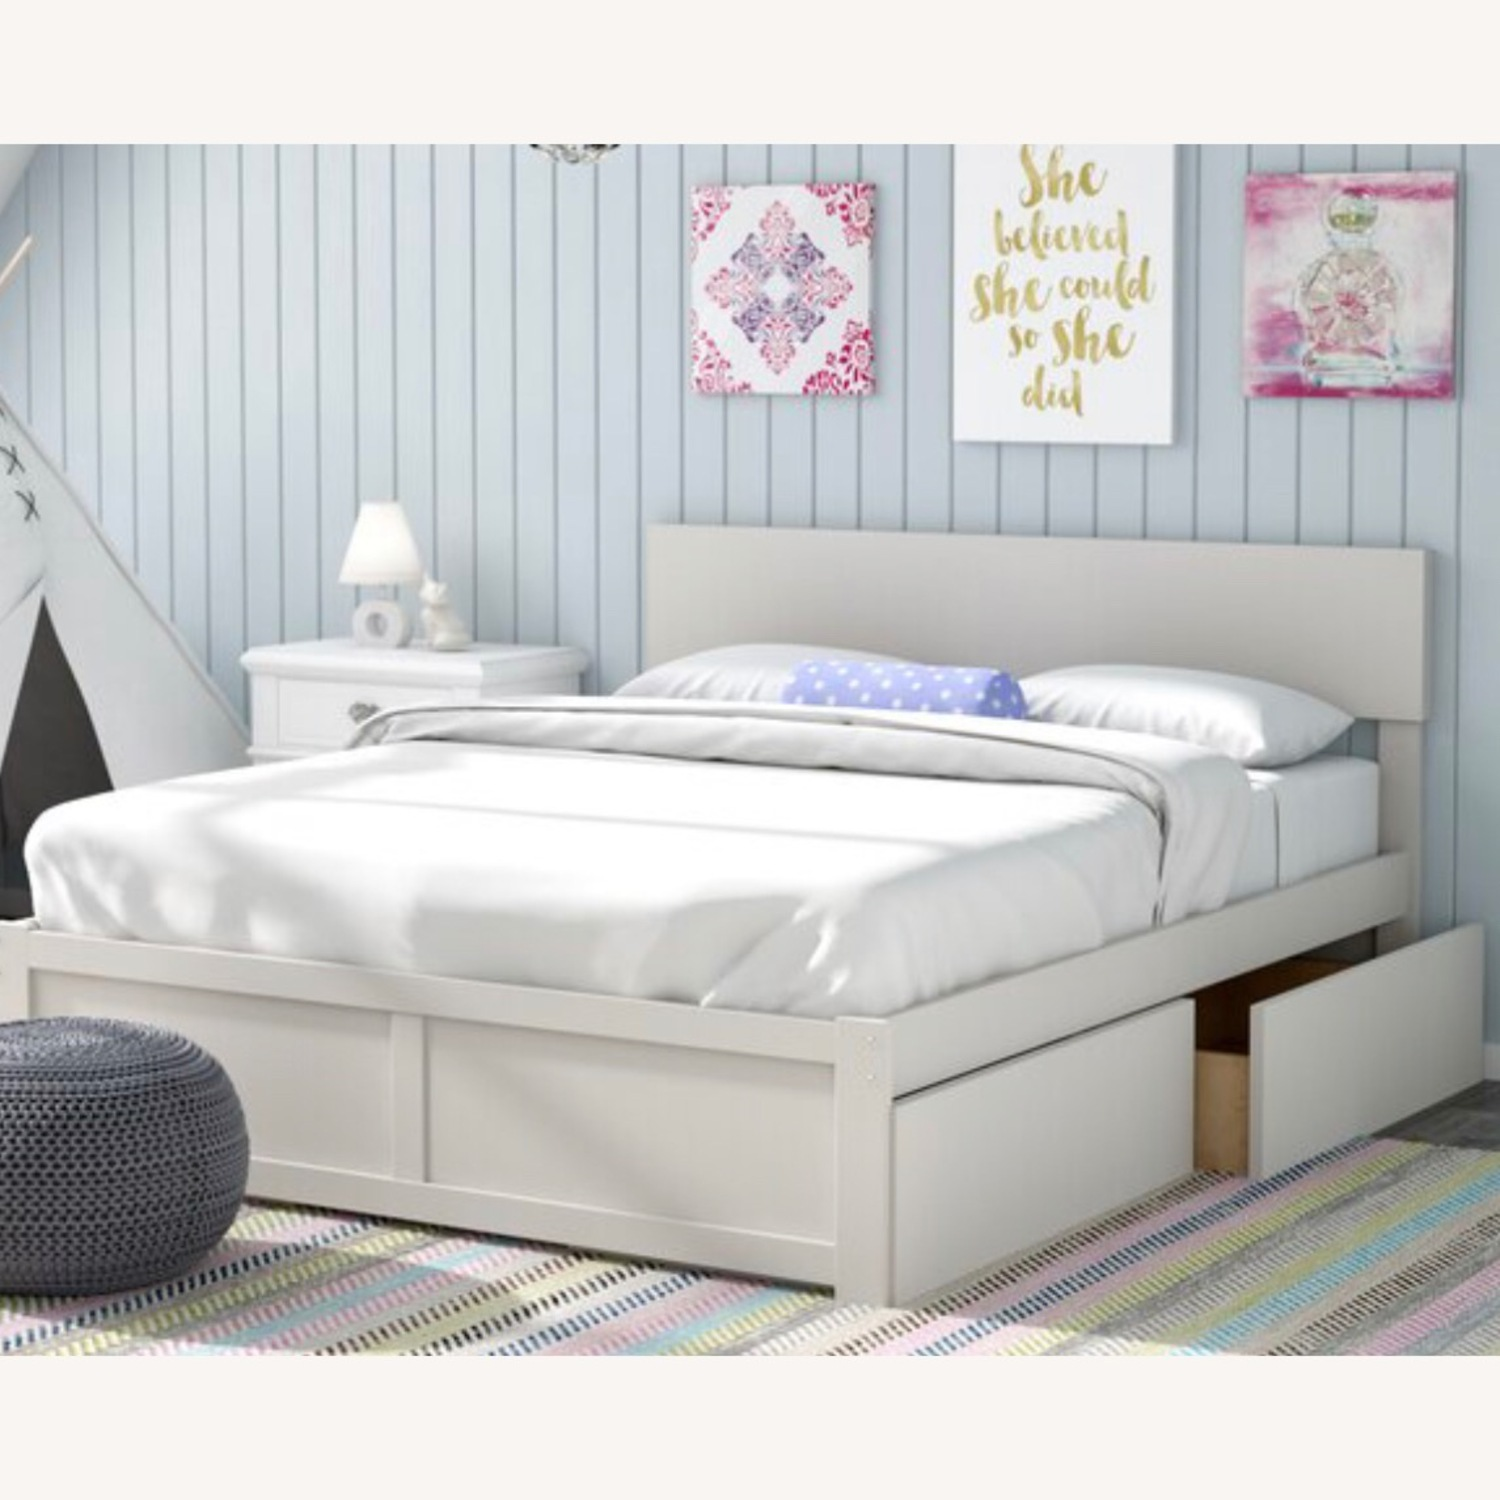 Full size bed in ESPRESSO wood w/drawers or trundle - image-2